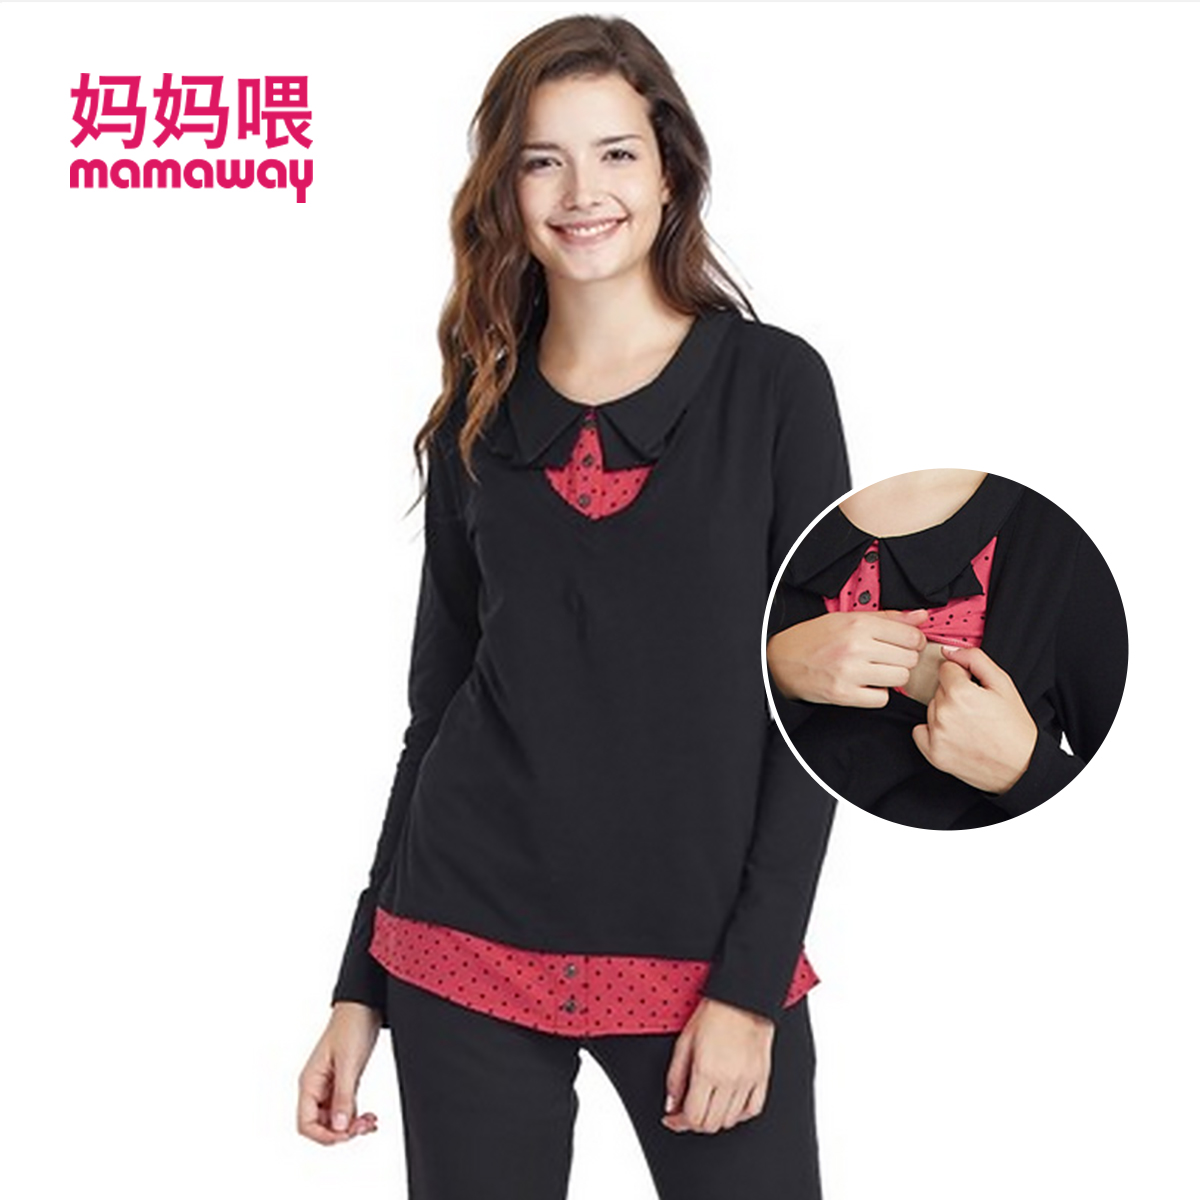 81717b38313e7 Get Quotations · Hey mom during pregnancy and lactation maternity fashion  mother dress 2 use during pregnancy and lactation